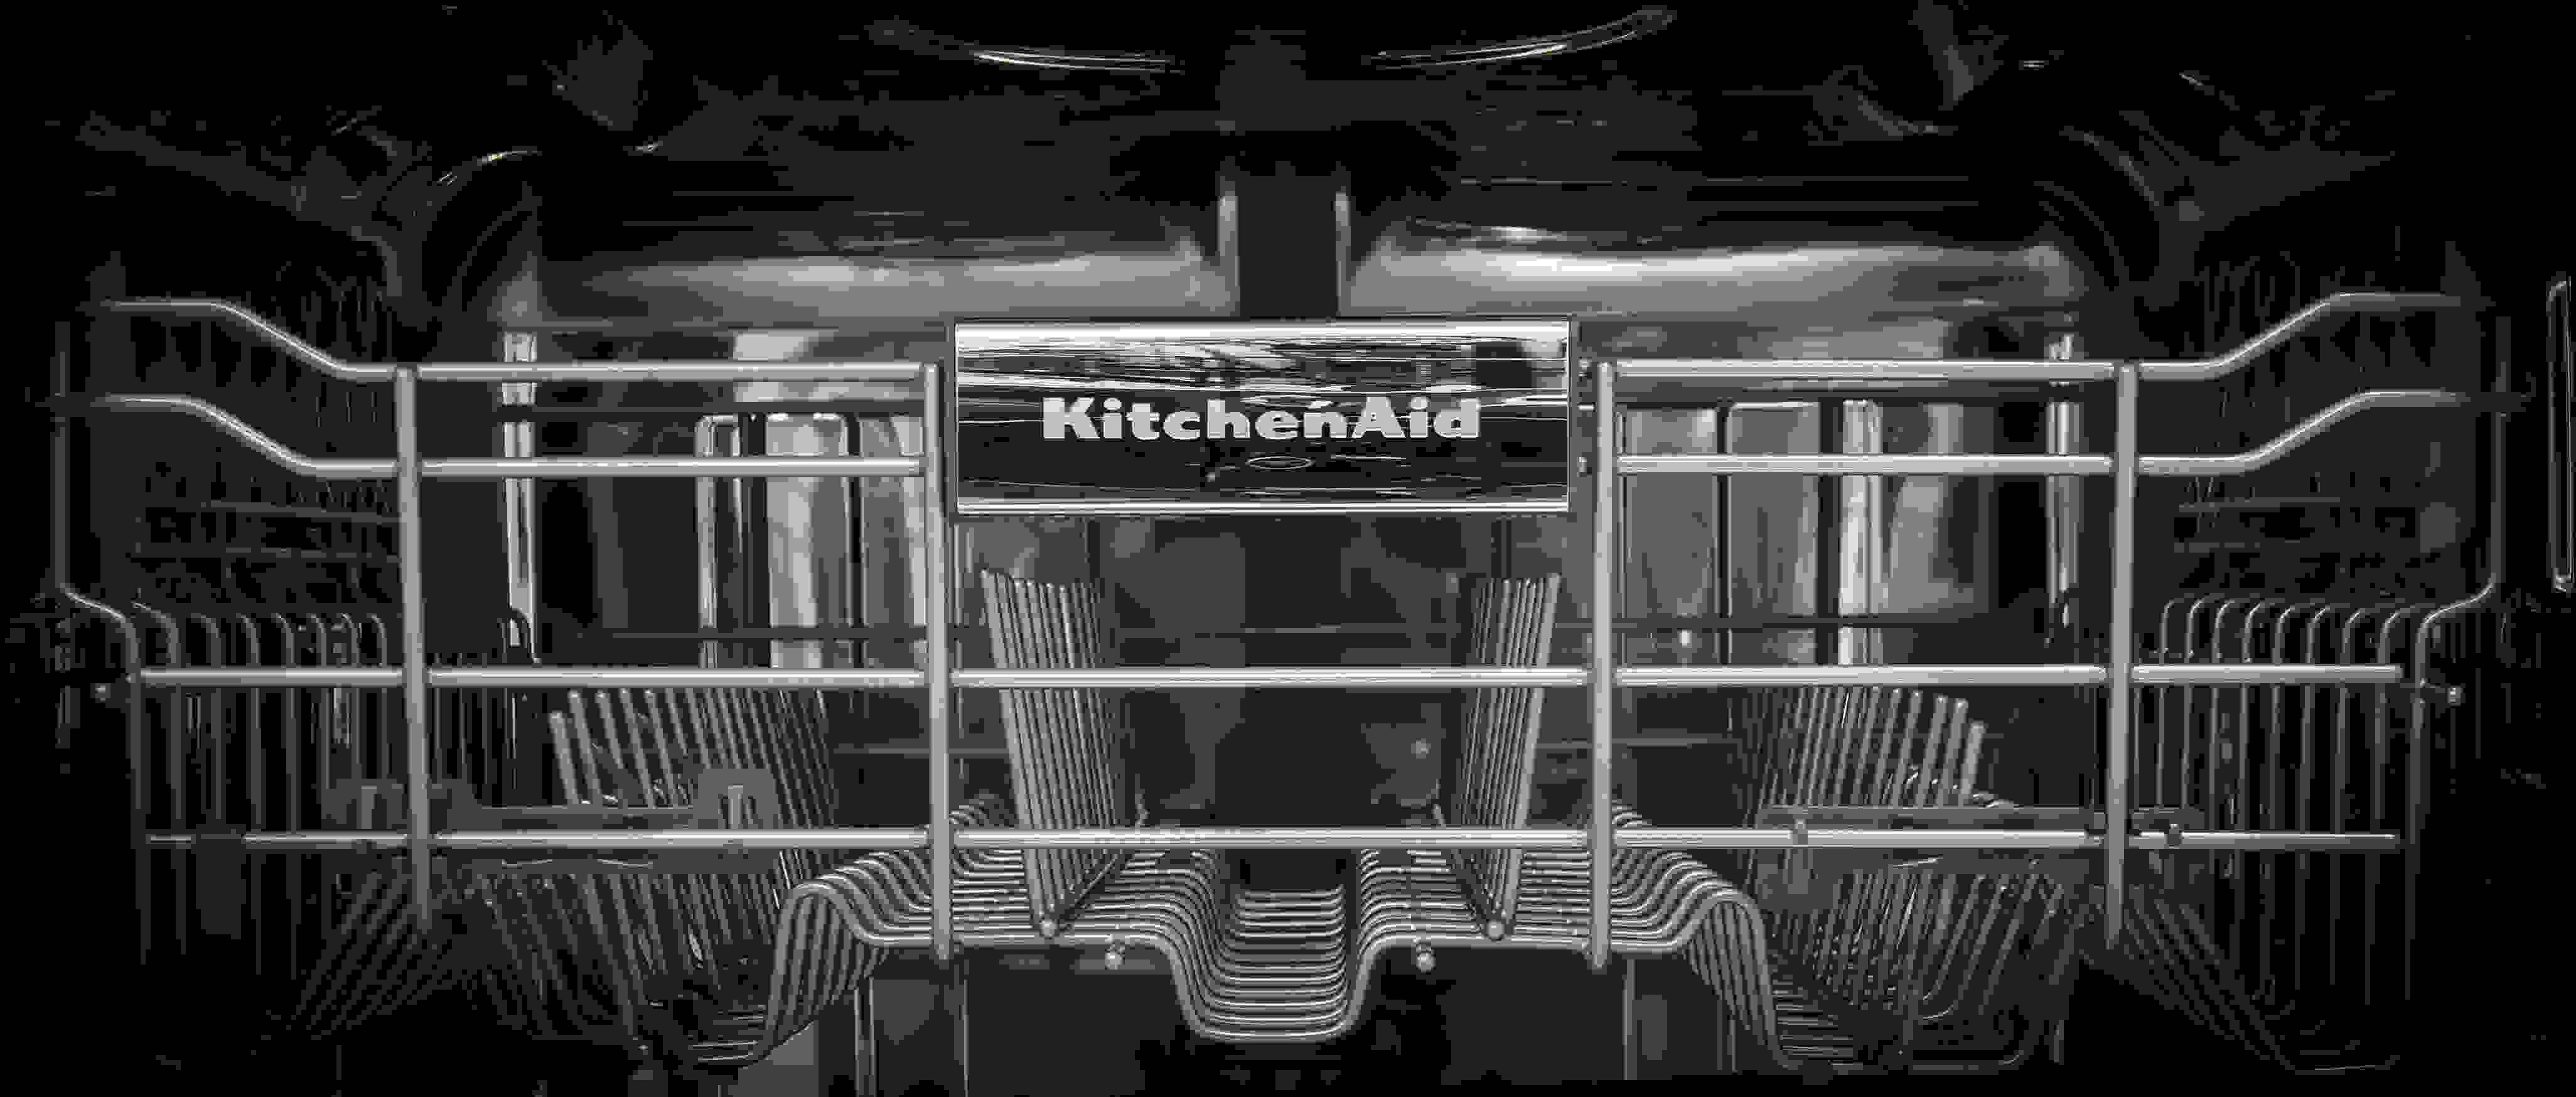 KitchenAid KDTM354DSS